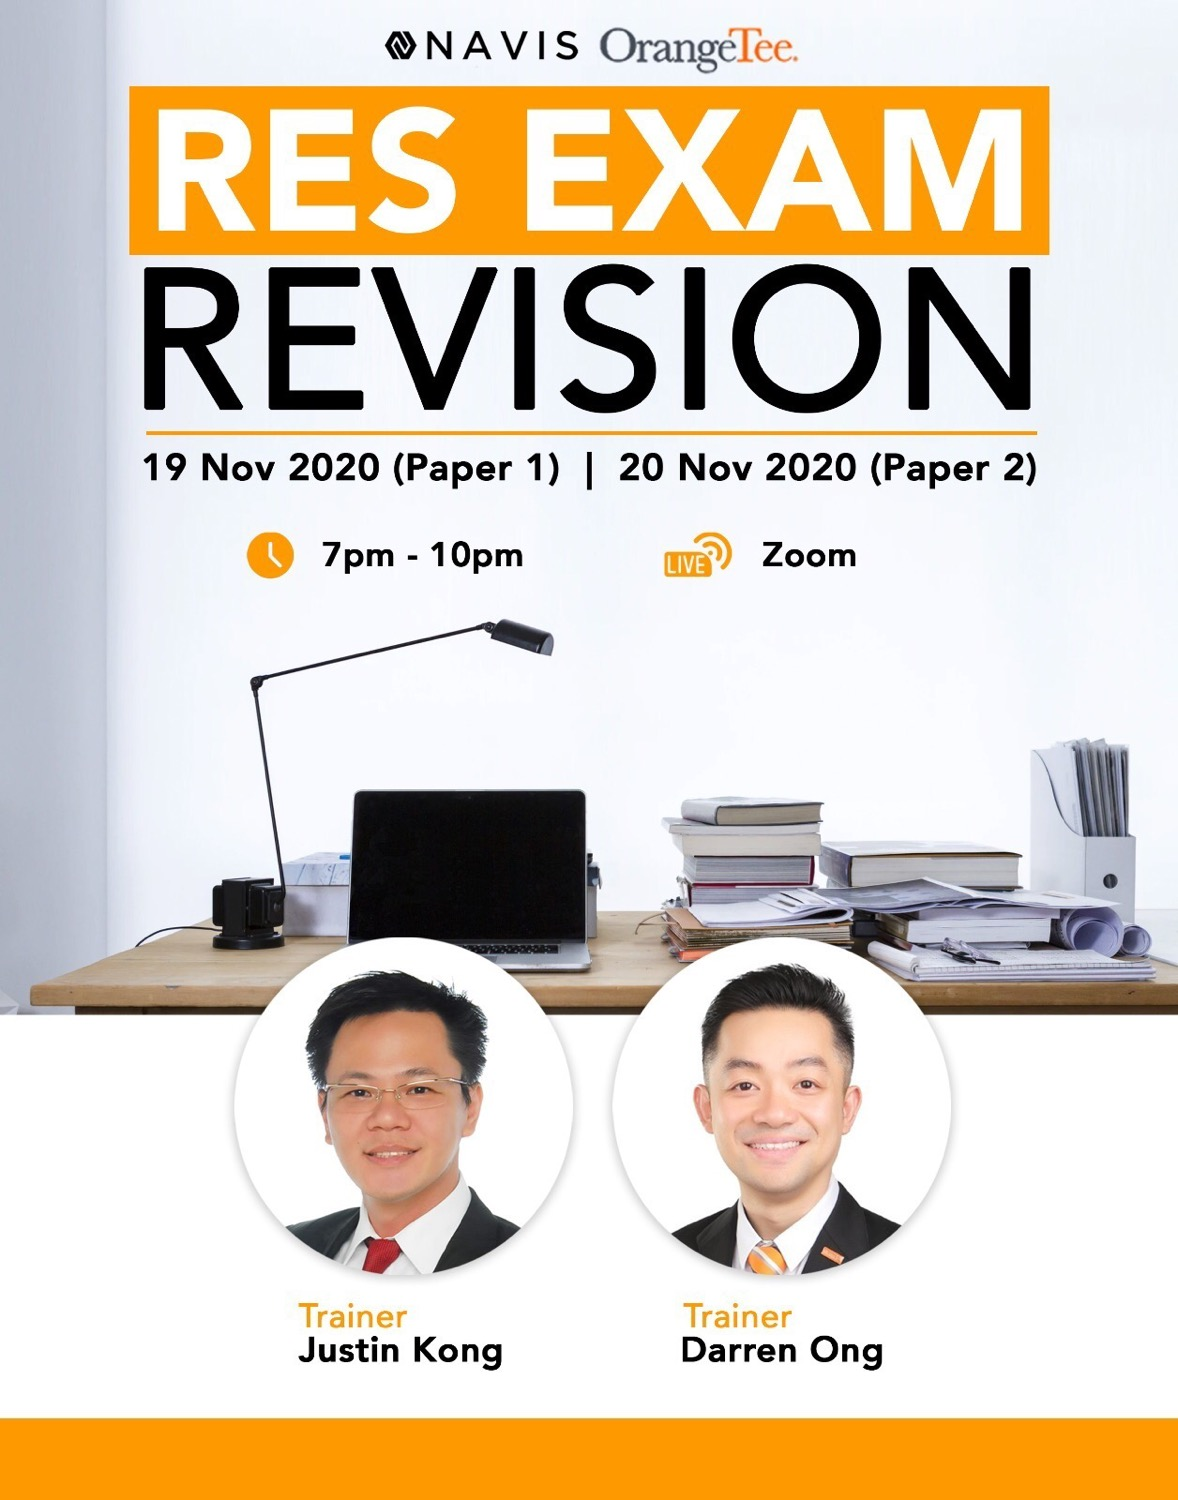 RES Revision Tutorials for Aspiring New Agents